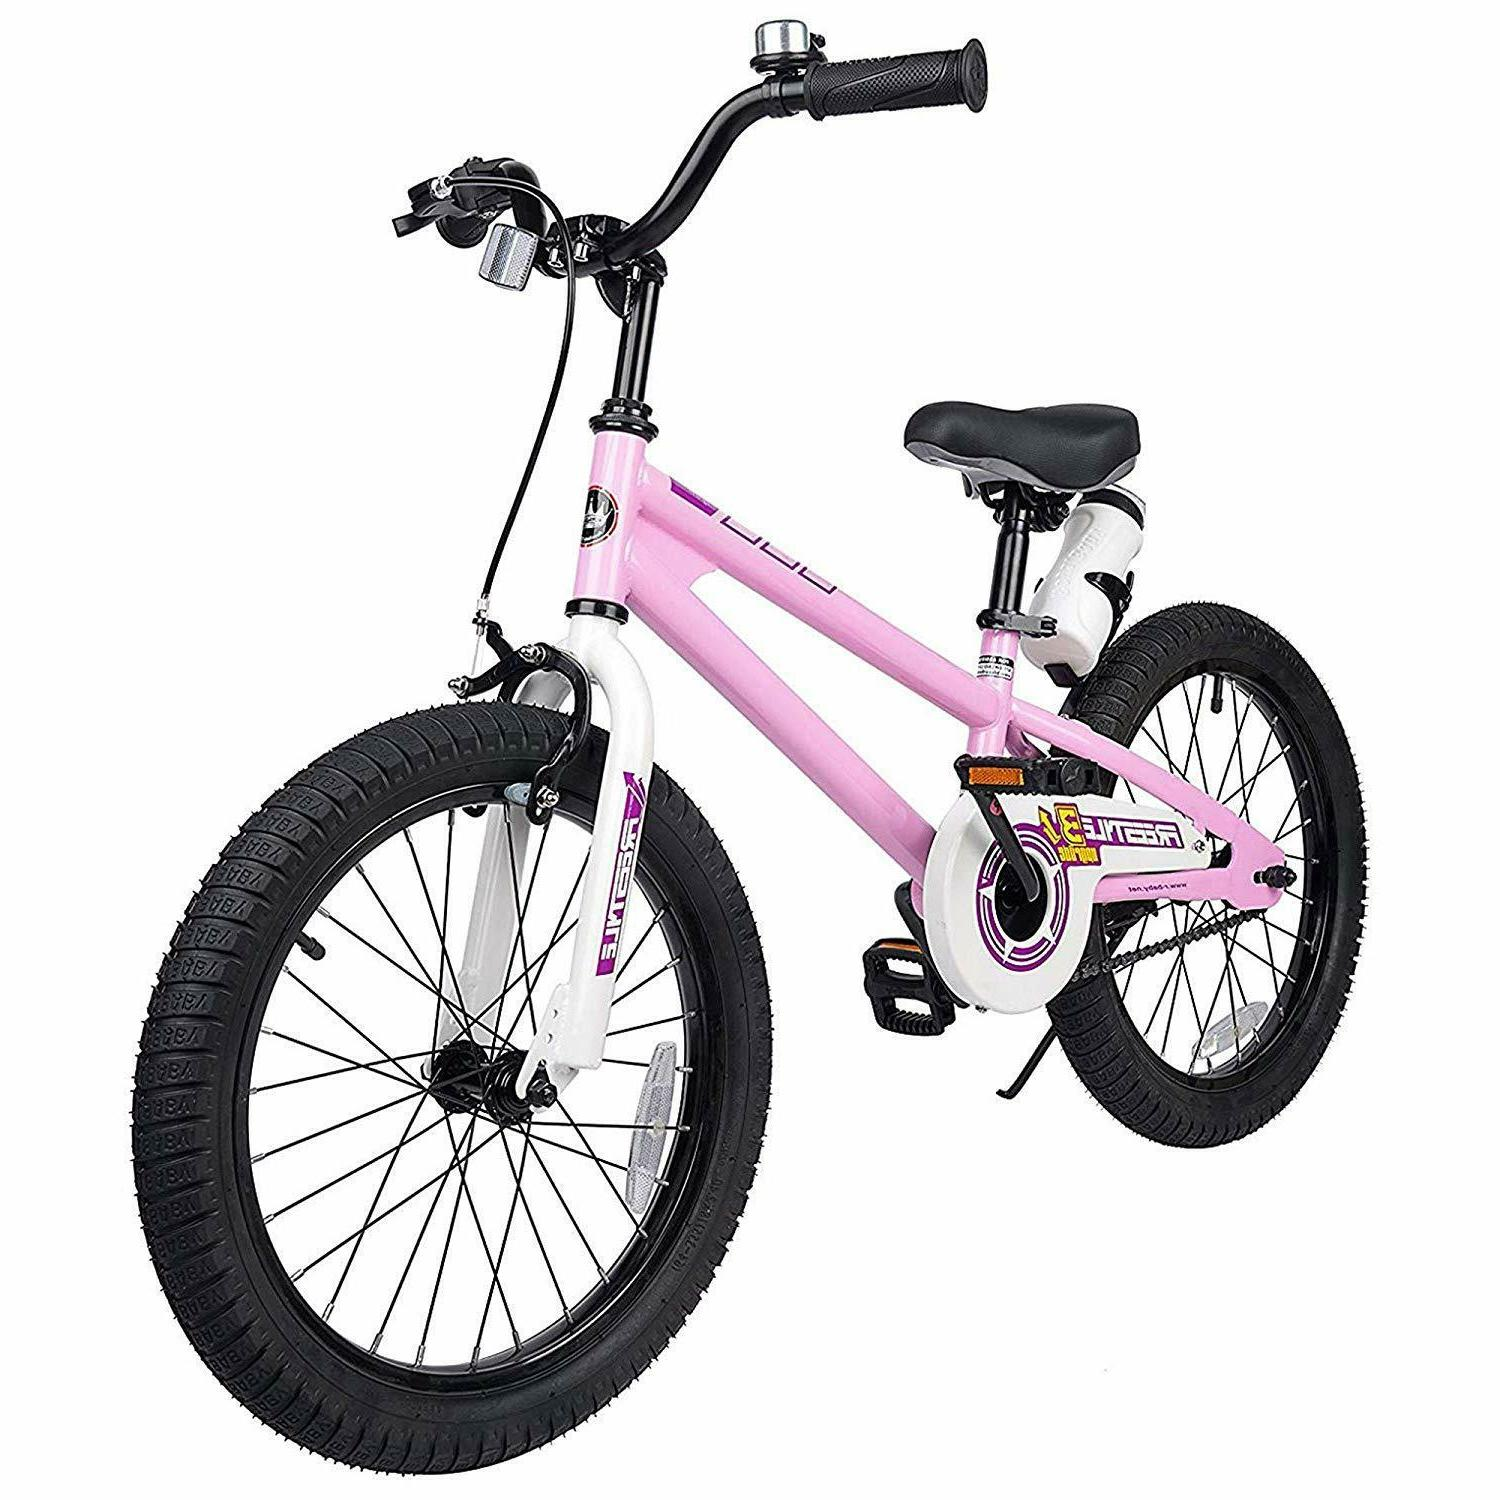 Boys Bike With and Rear Coaster For 5-9